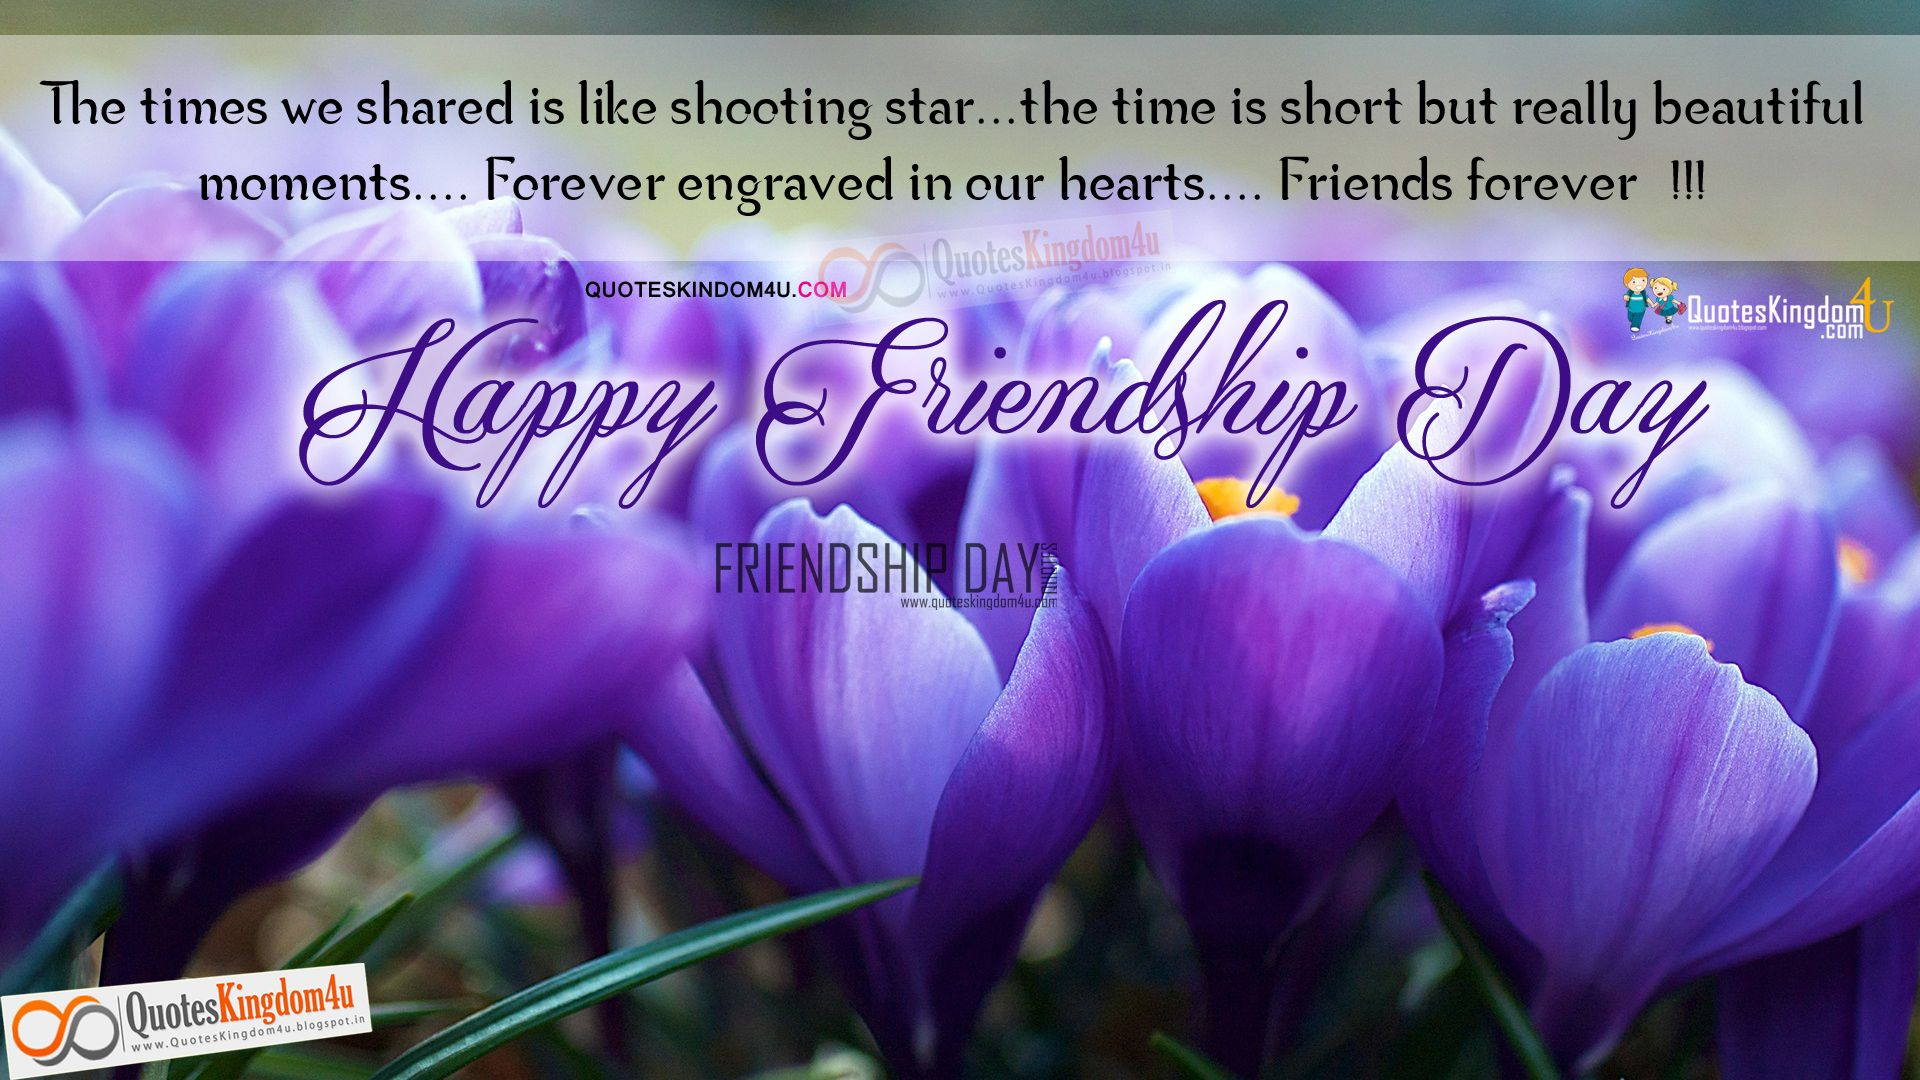 Friendship day wishes images pictures in english friendship day hd friendship day wishes images pictures in english friendship day hd wishes nice friendship day quotes hearttouching altavistaventures Images